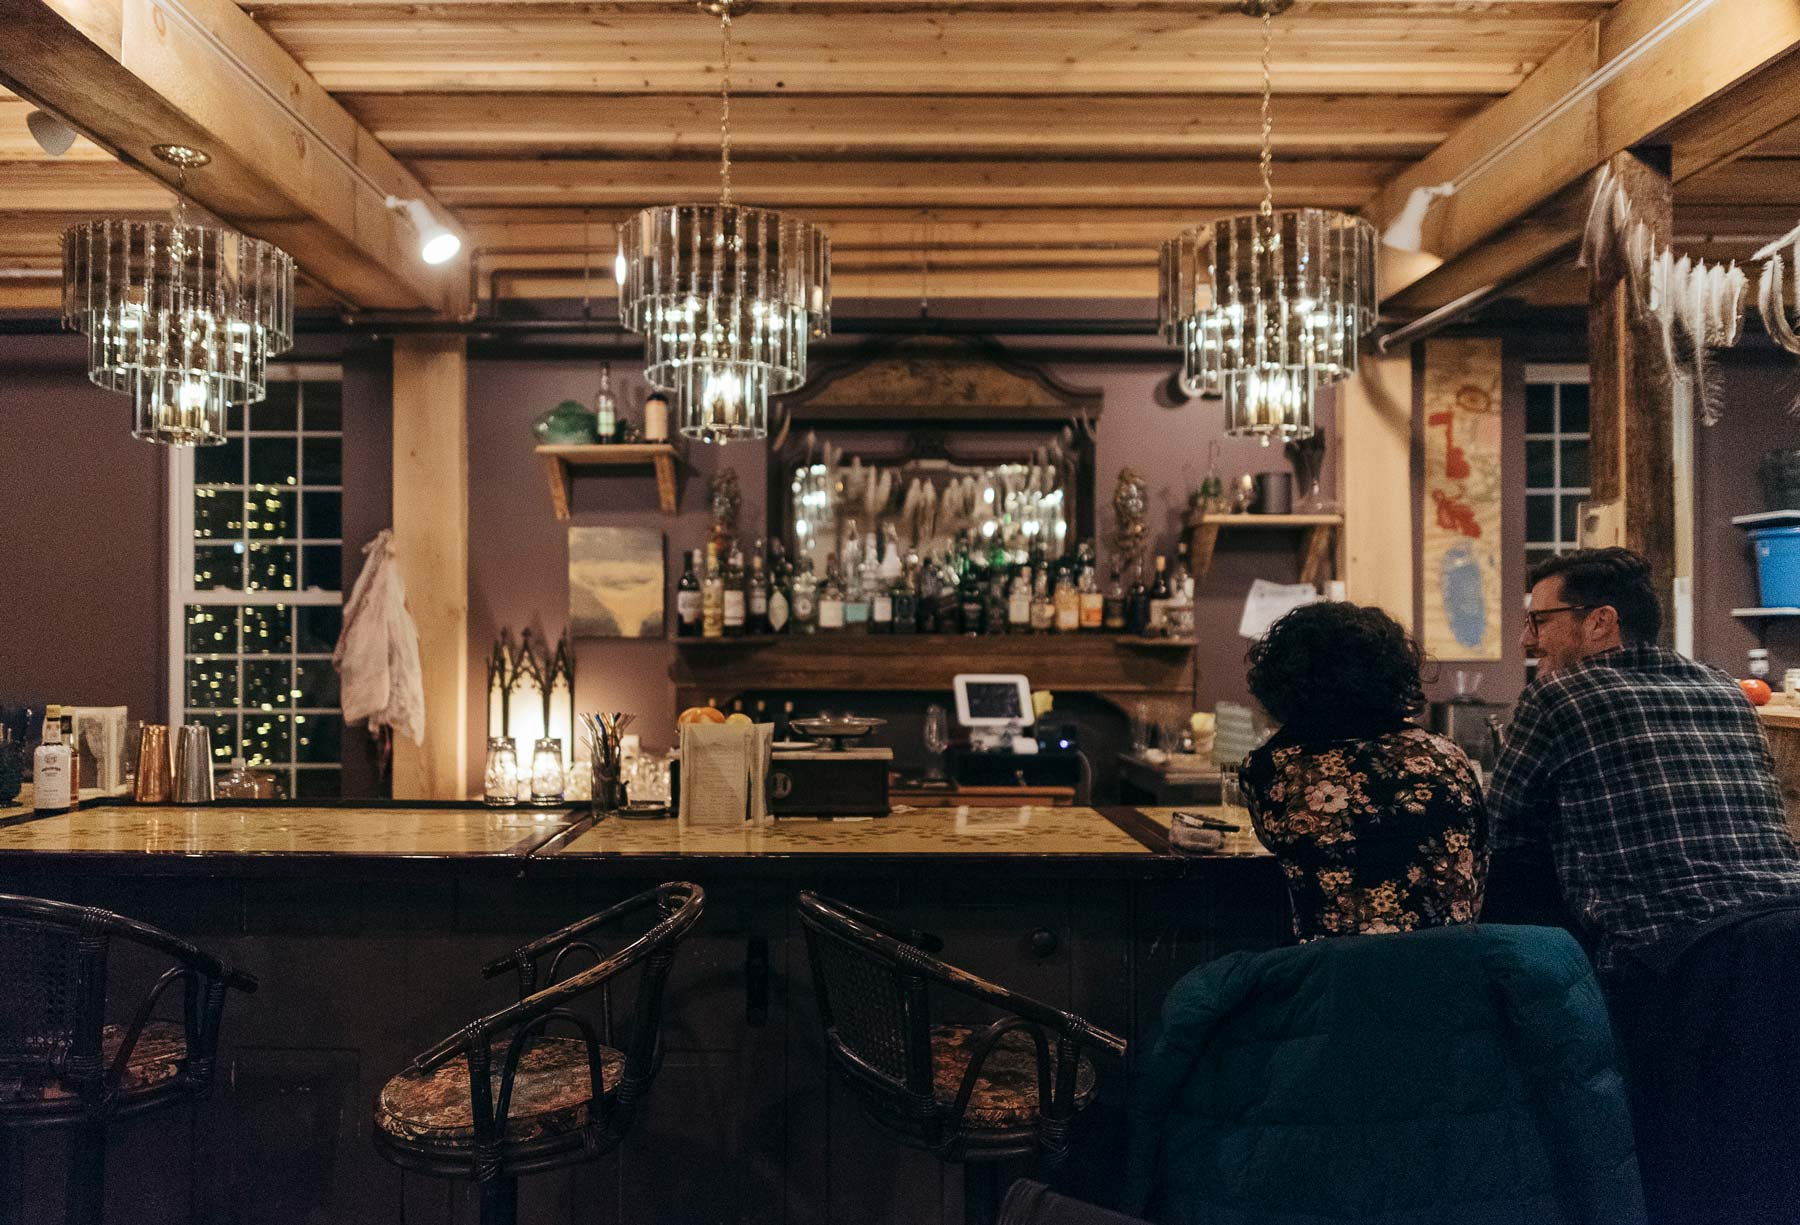 Vintage chandeliers glow, part of the warm atmosphere at Vessel and Vine.